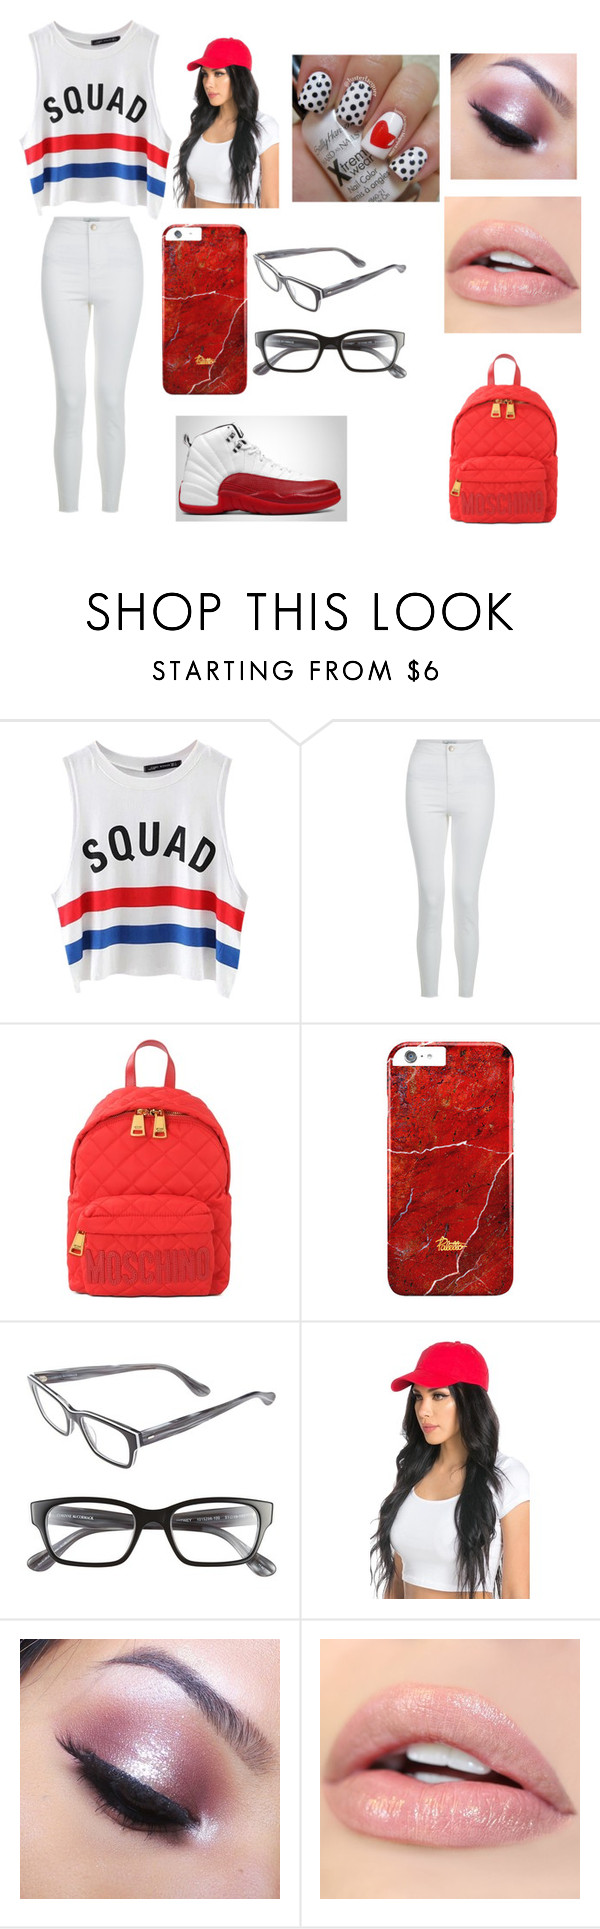 """""""Your Sqaud Outfit"""" by jaden-norman ❤ liked on Polyvore featuring Chicnova Fashion, New Look, Moschino, Corinne McCormack and Too Faced Cosmetics"""